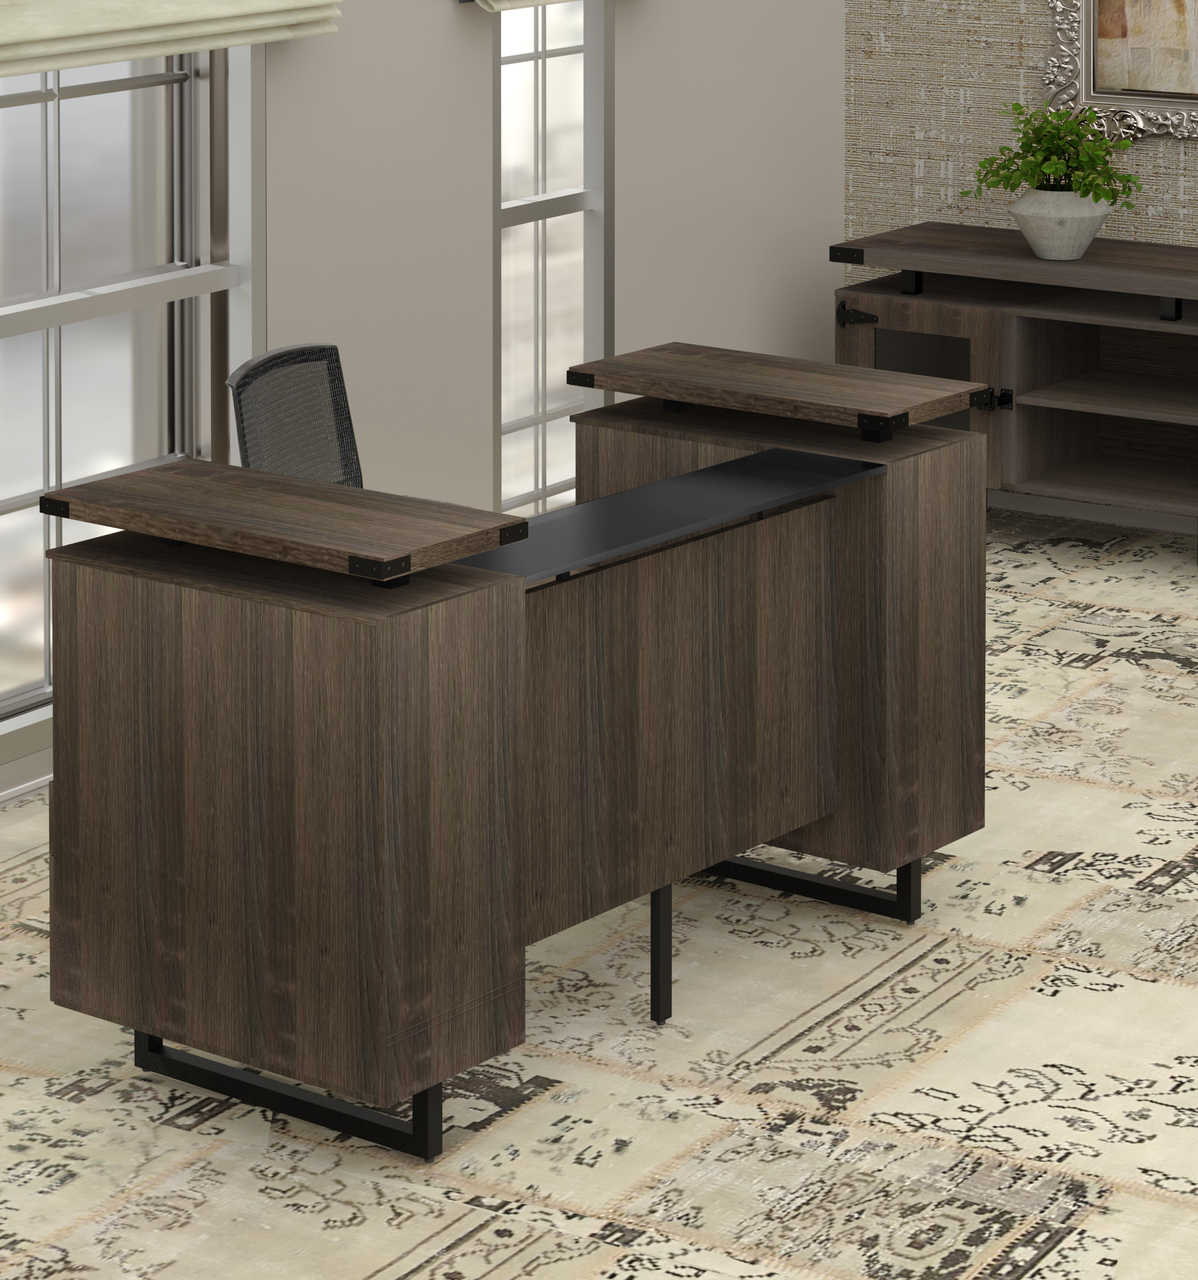 mirella southern tobacco reception desk in room setting